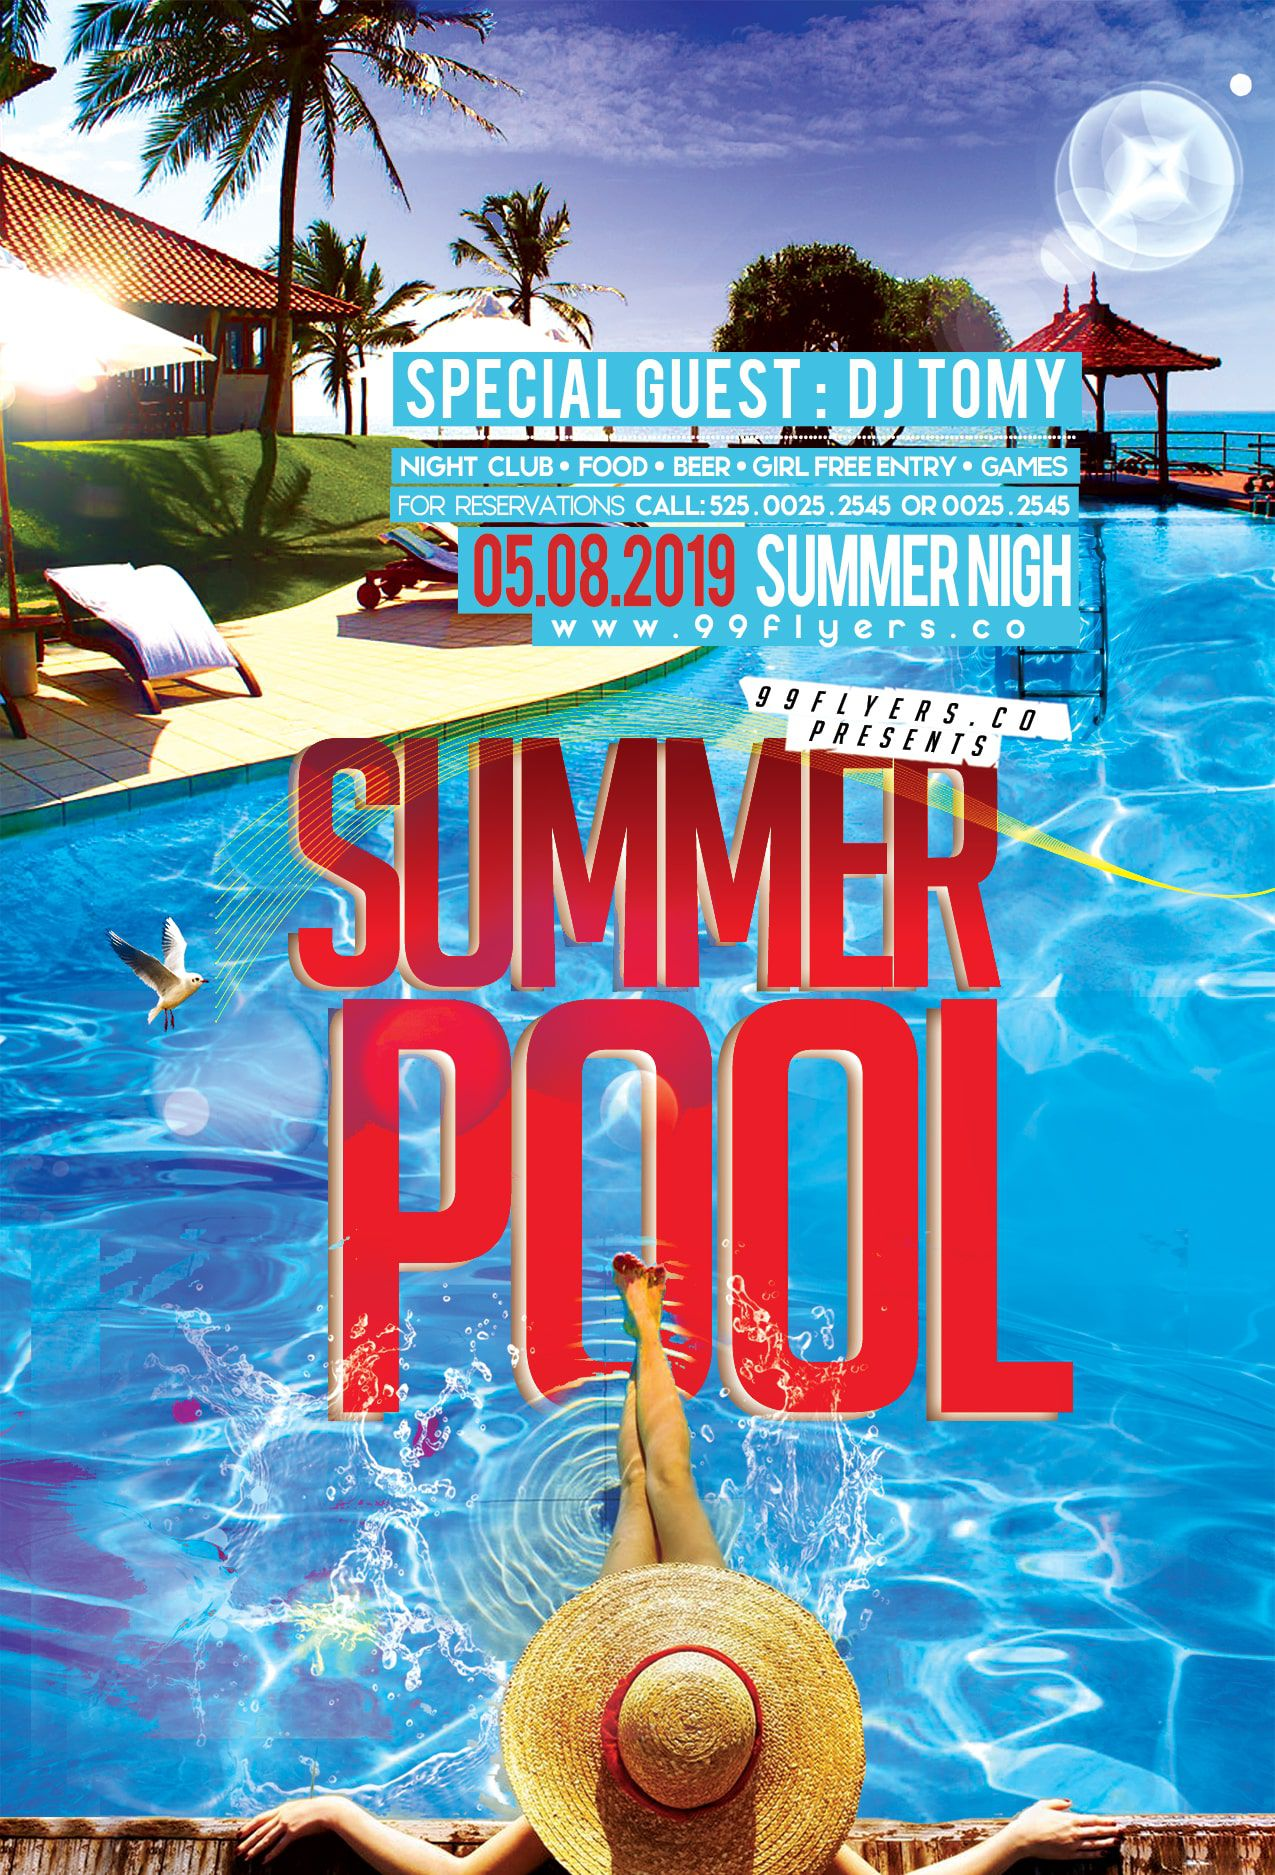 006 Exceptional Pool Party Flyer Template Free Sample  Photoshop PsdFull